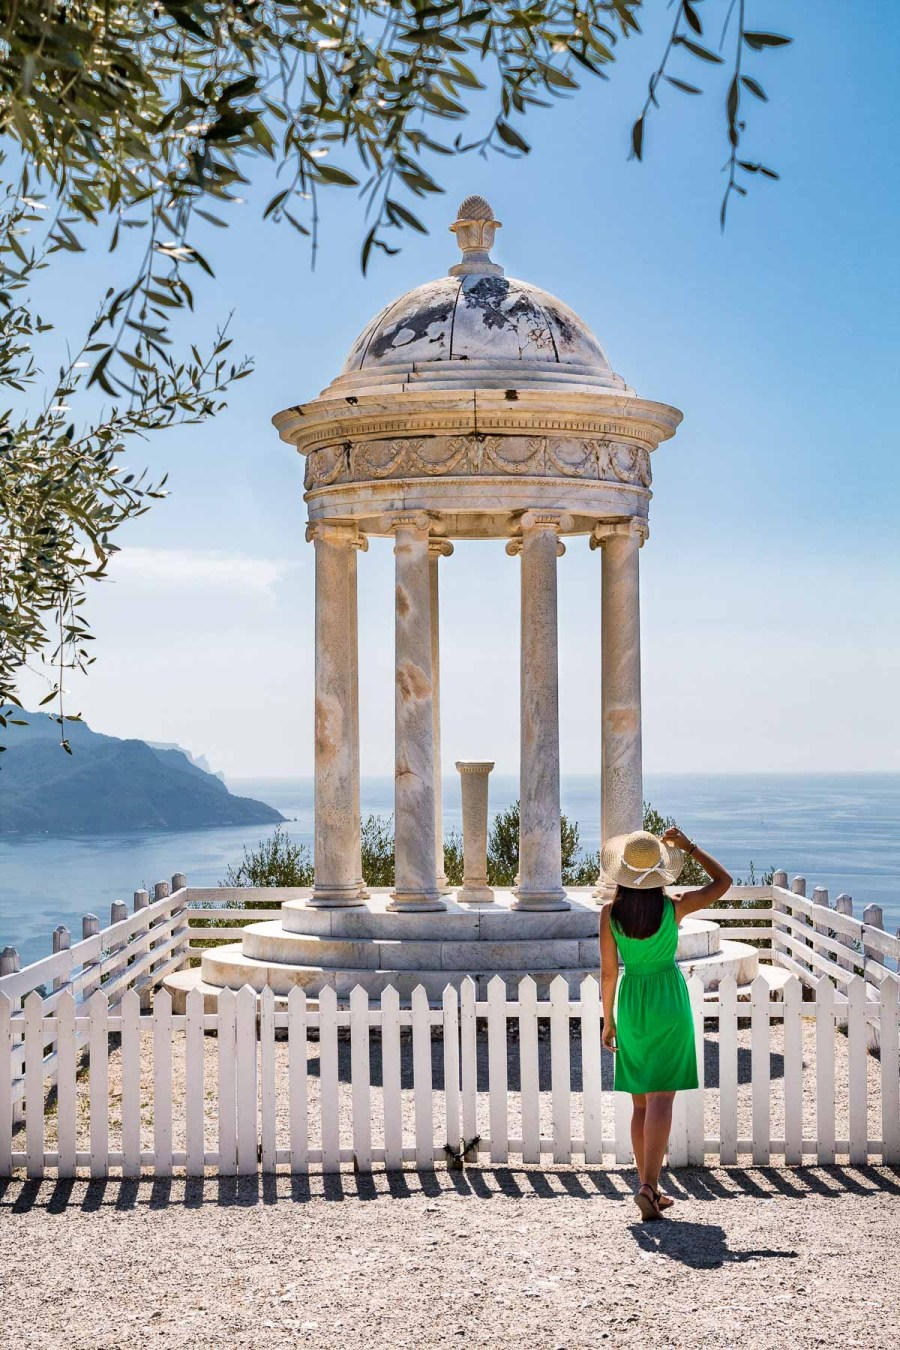 Girl in a green dress standing in front of a marble column at Son Marroig, one of the must visit places on every Mallorca road trip